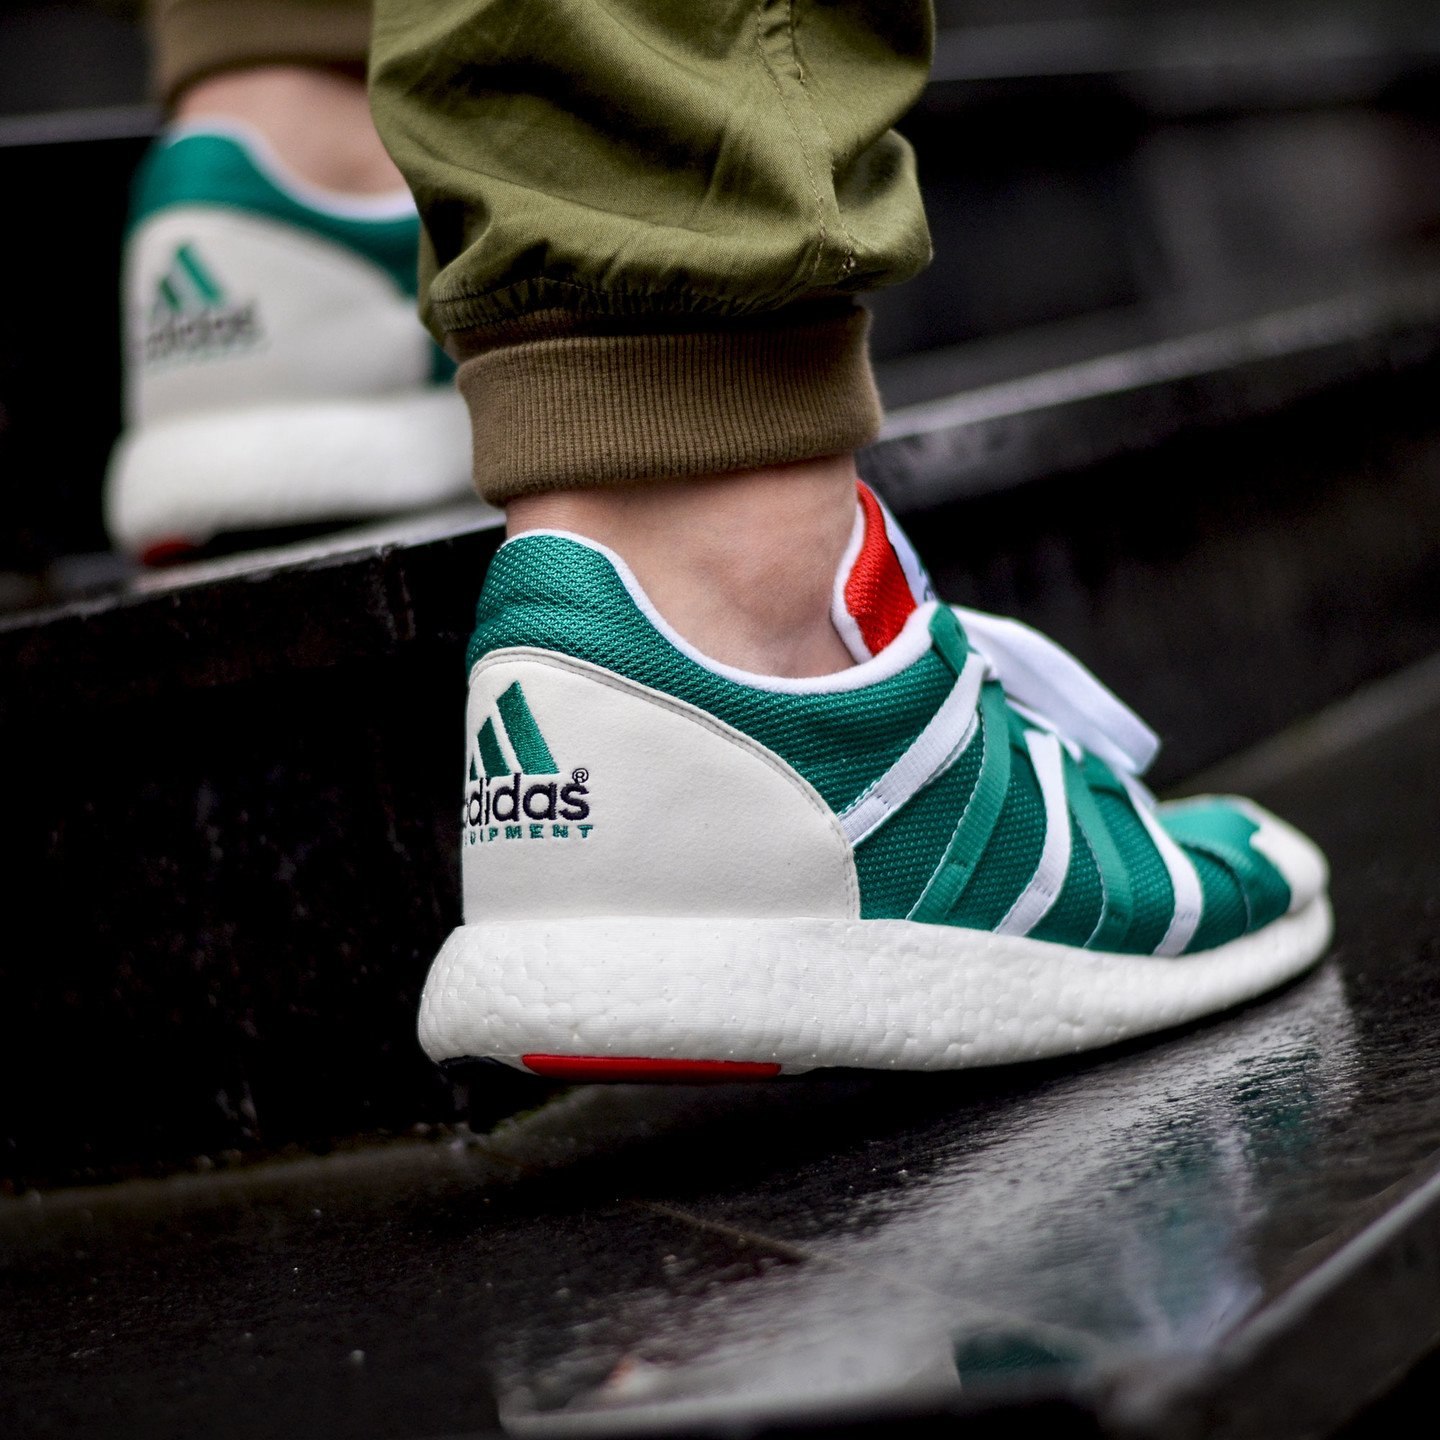 Adidas Equipment Racing 93/16 Sub Green / Ftw White / Col Red S79122-46